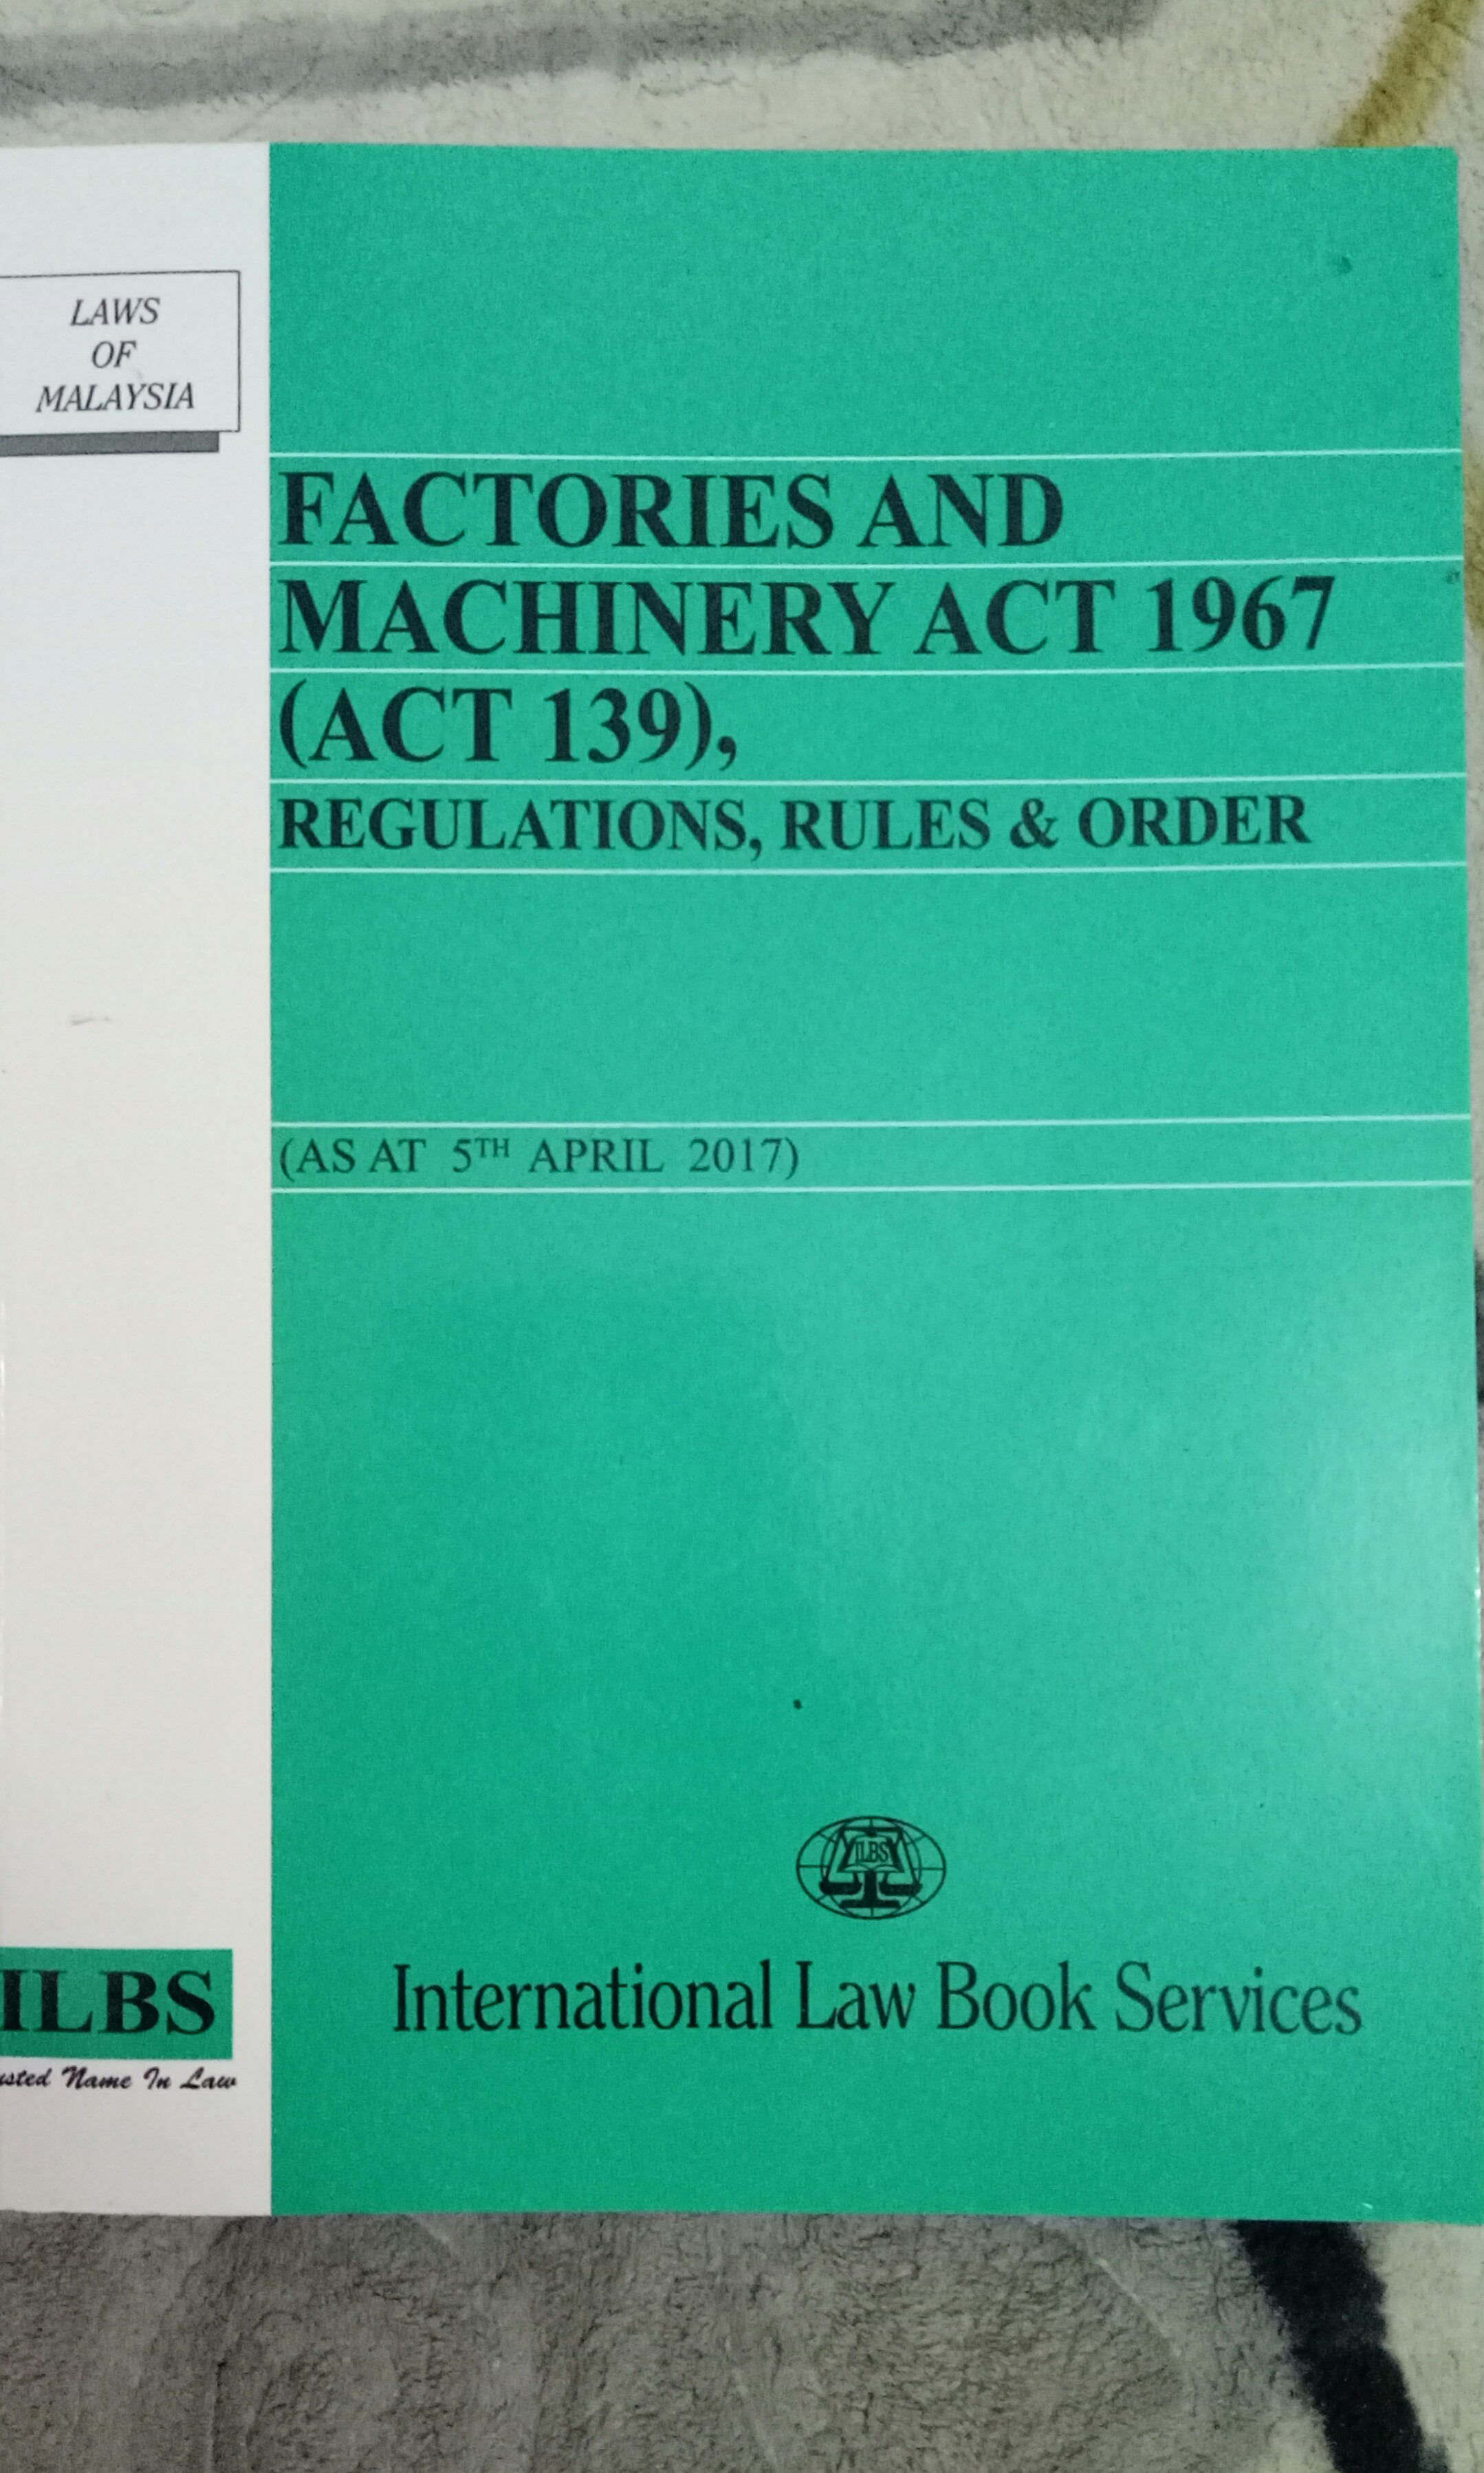 Factories And Machinery Act 1967 International Law Book Services Textbooks On Carousell